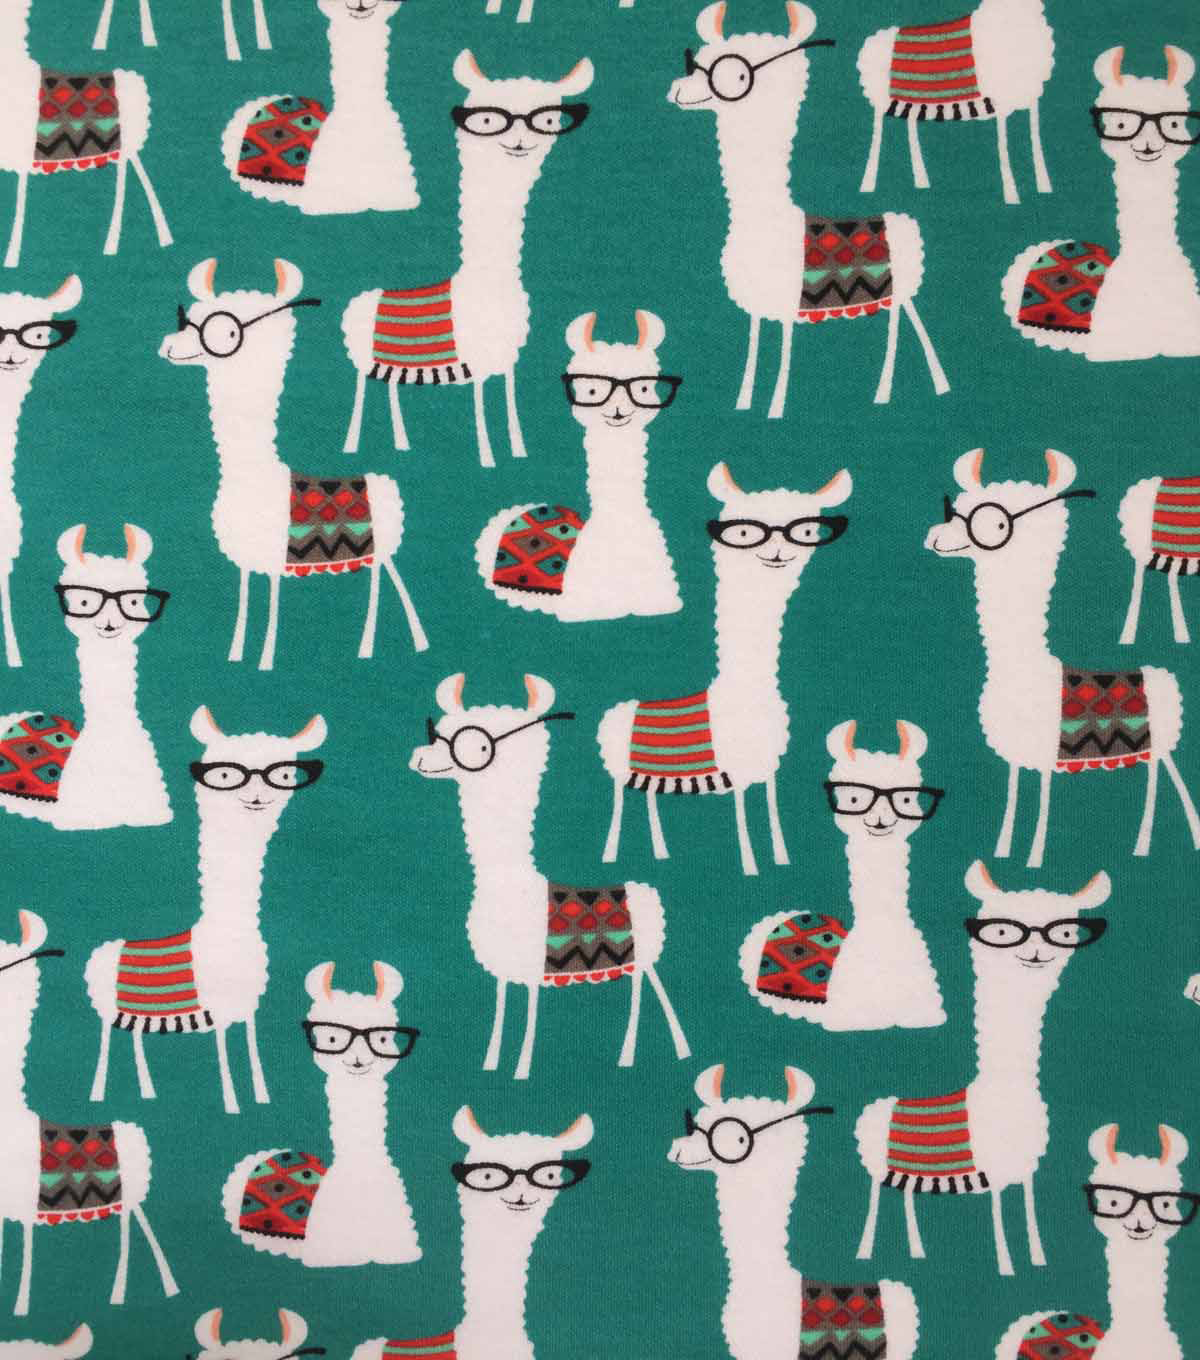 Doodles Cotton Interlock Knit Fabric-Llama Library